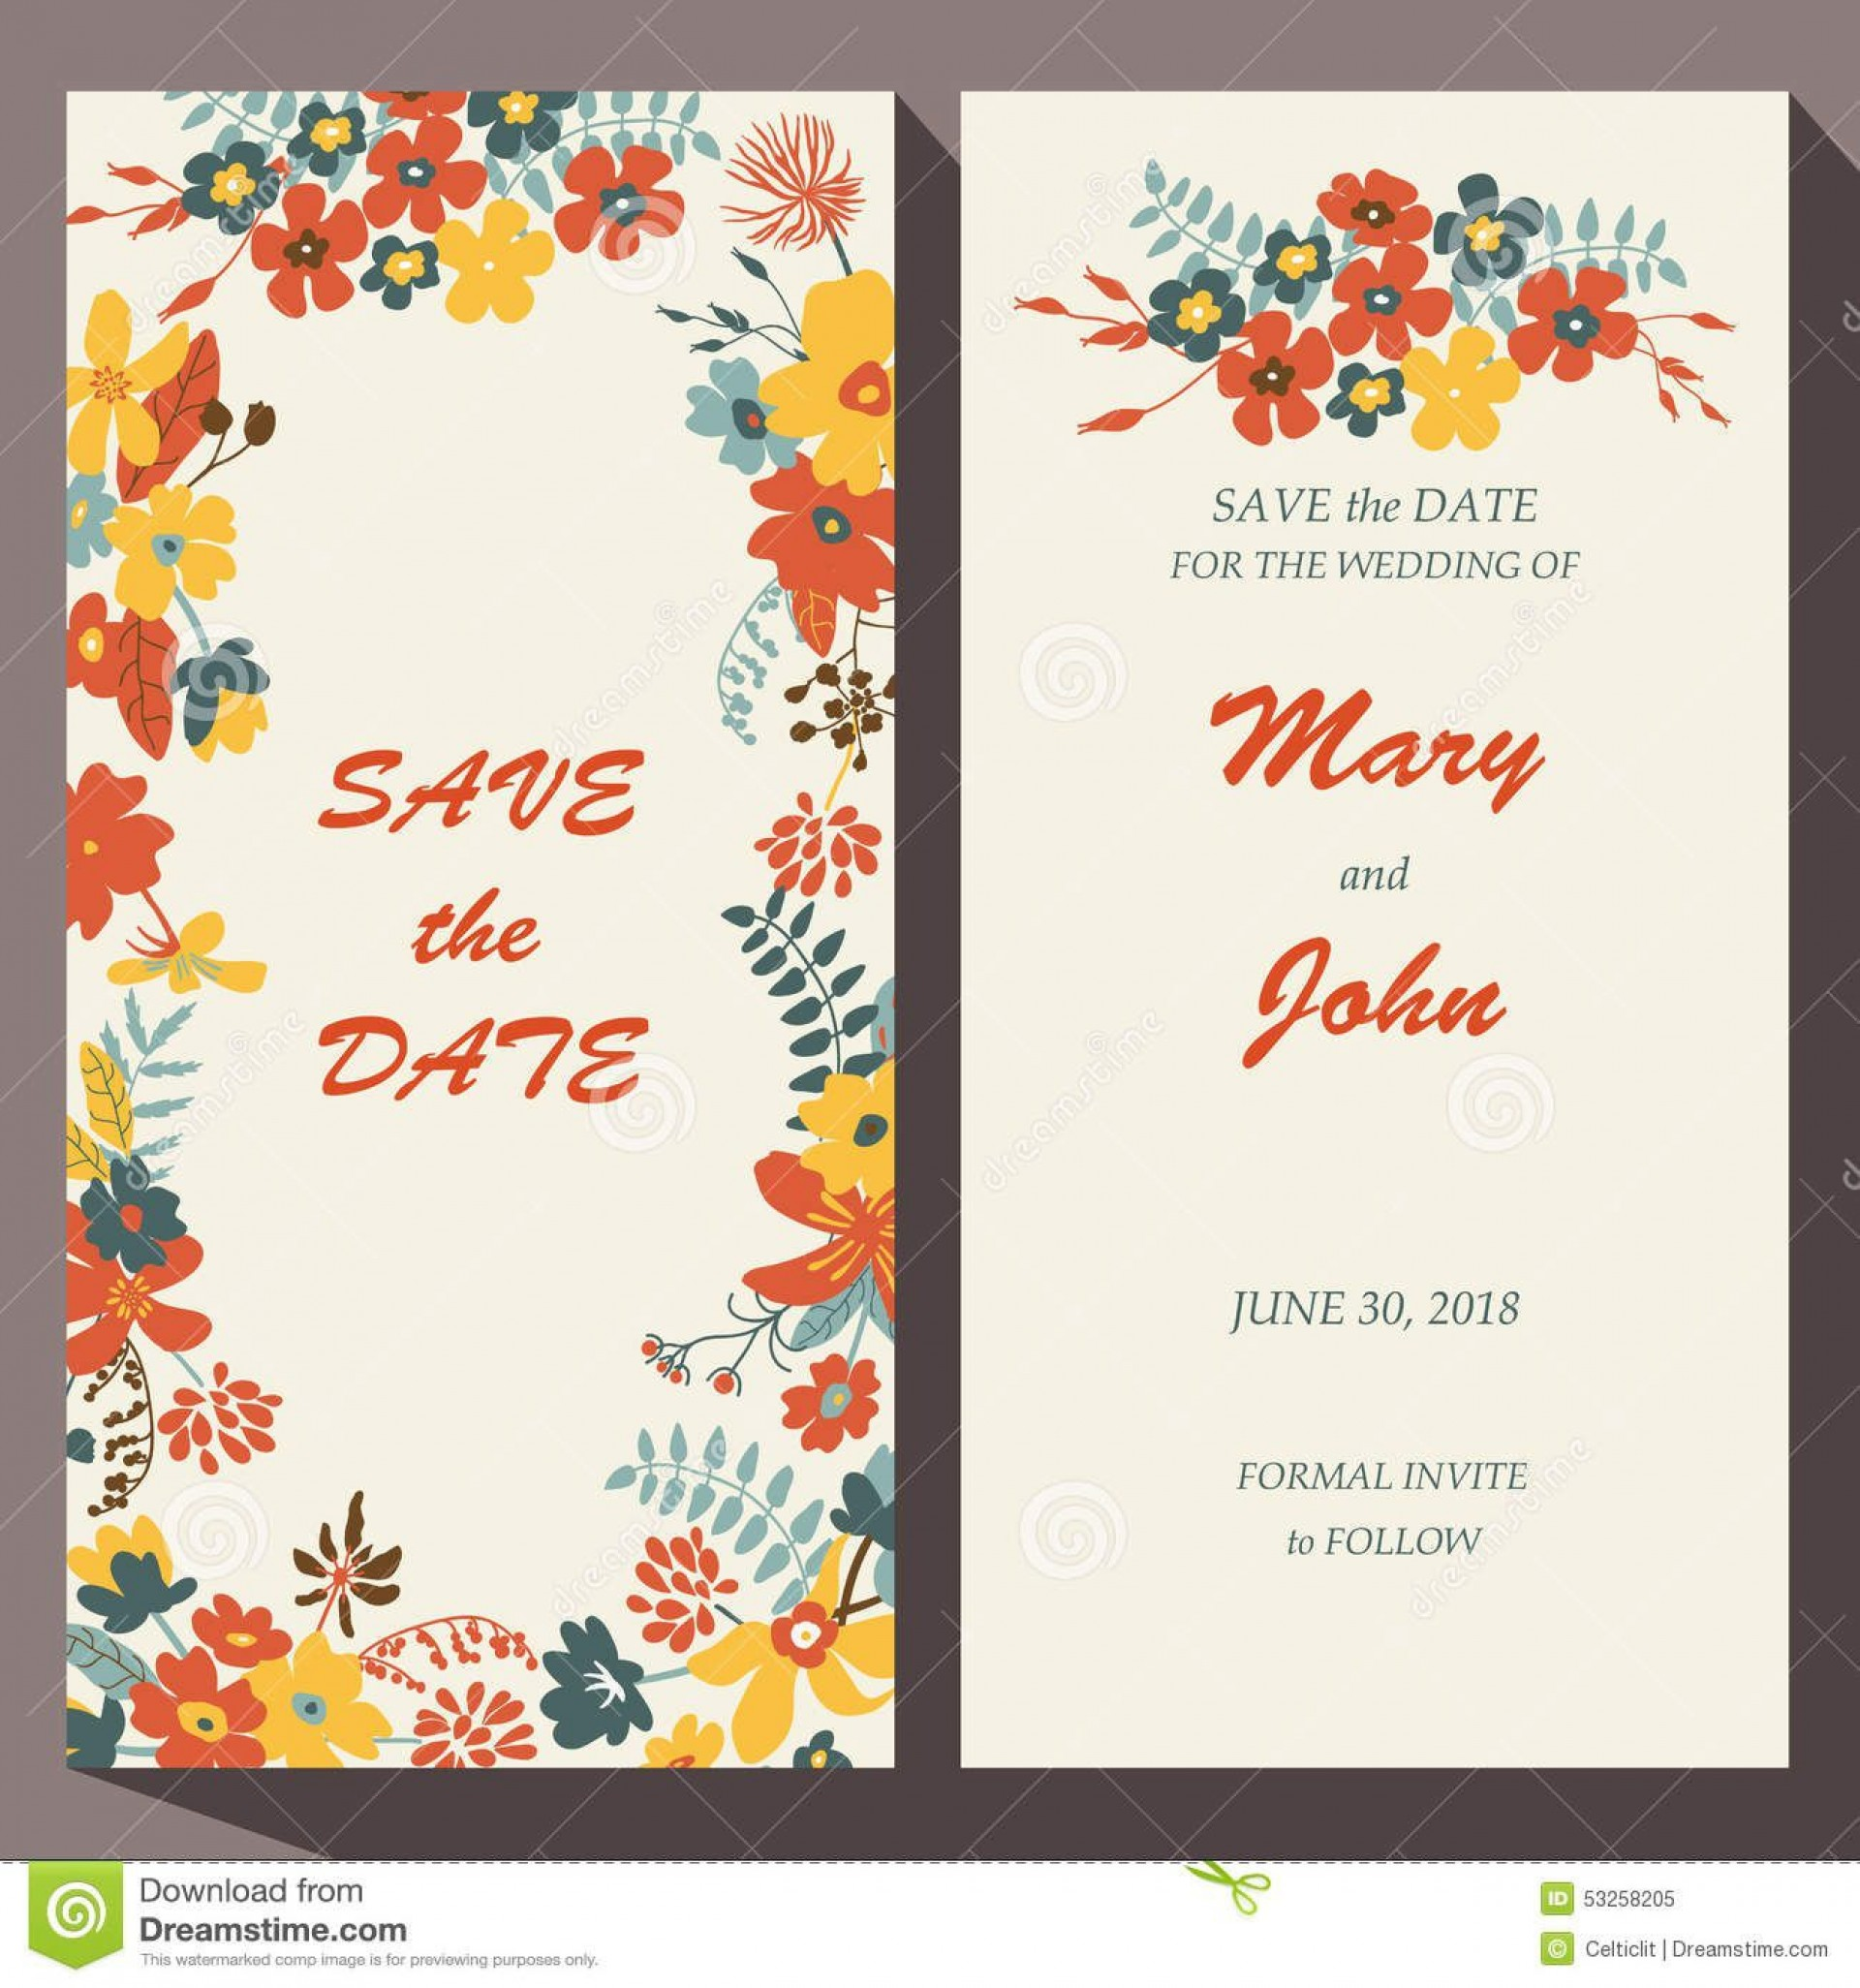 008 Fascinating Save The Date Birthday Card Template High Def  Free Printable1920